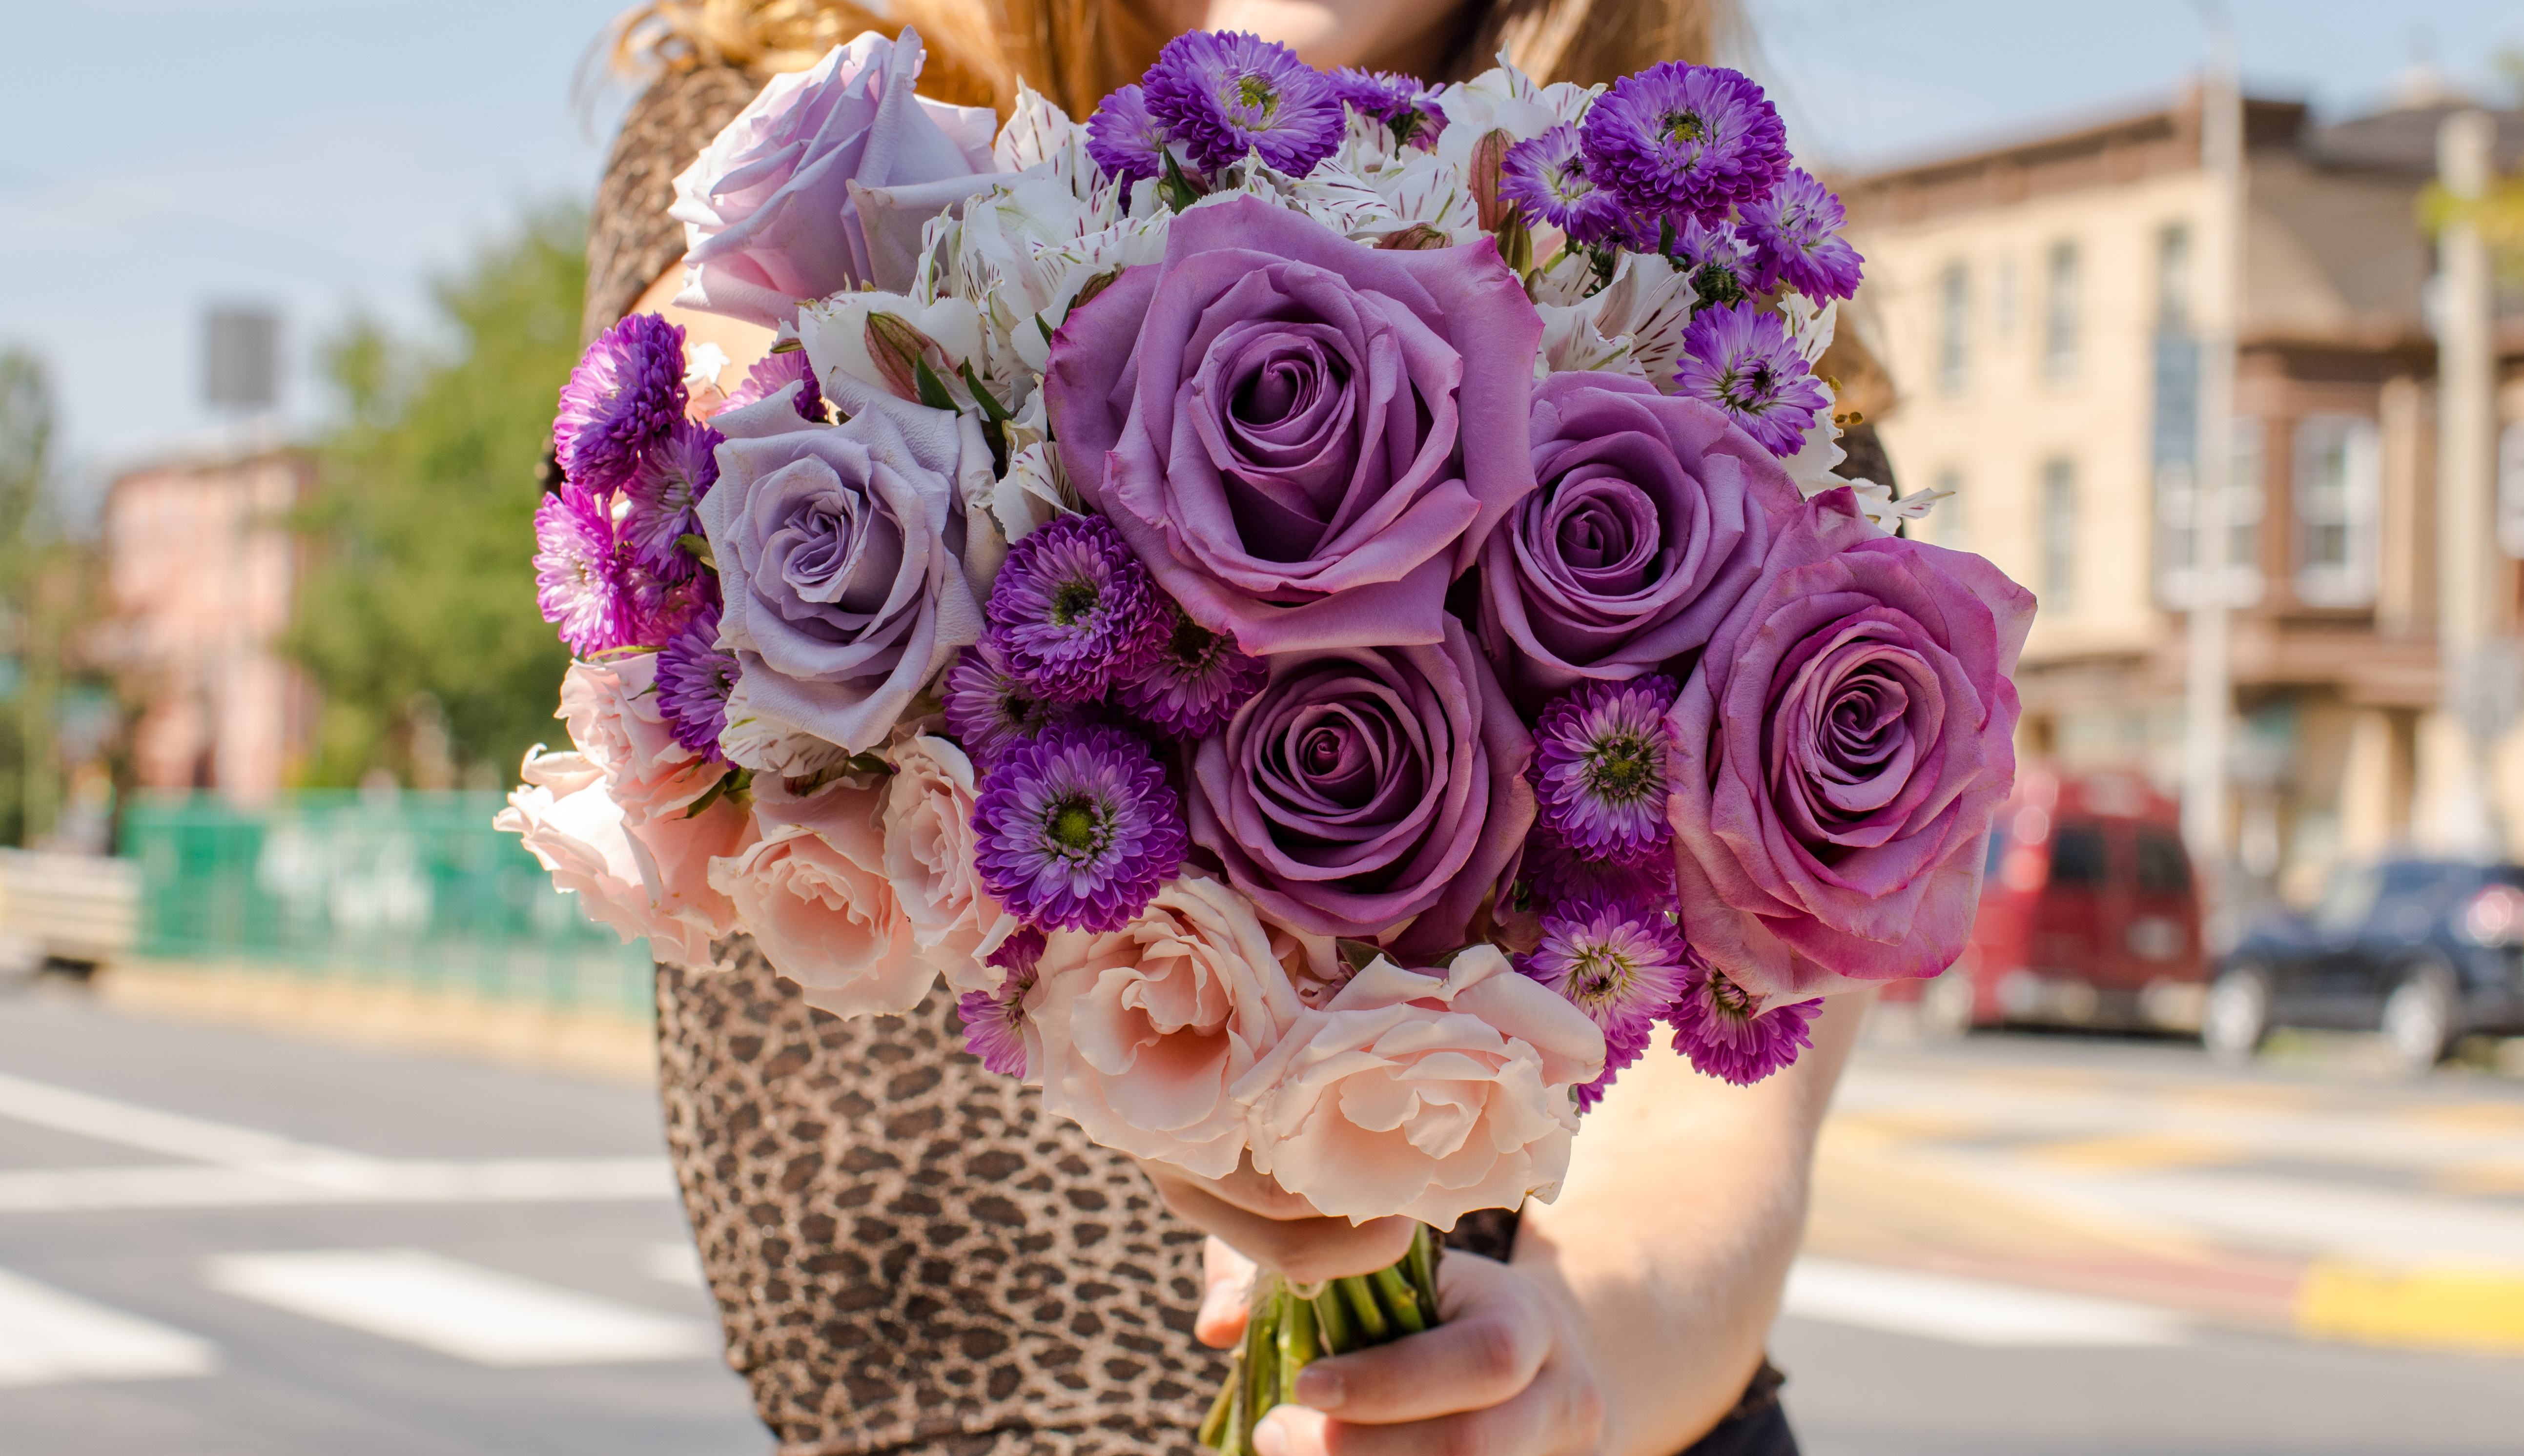 Close up of floral bouquet containing purple asters